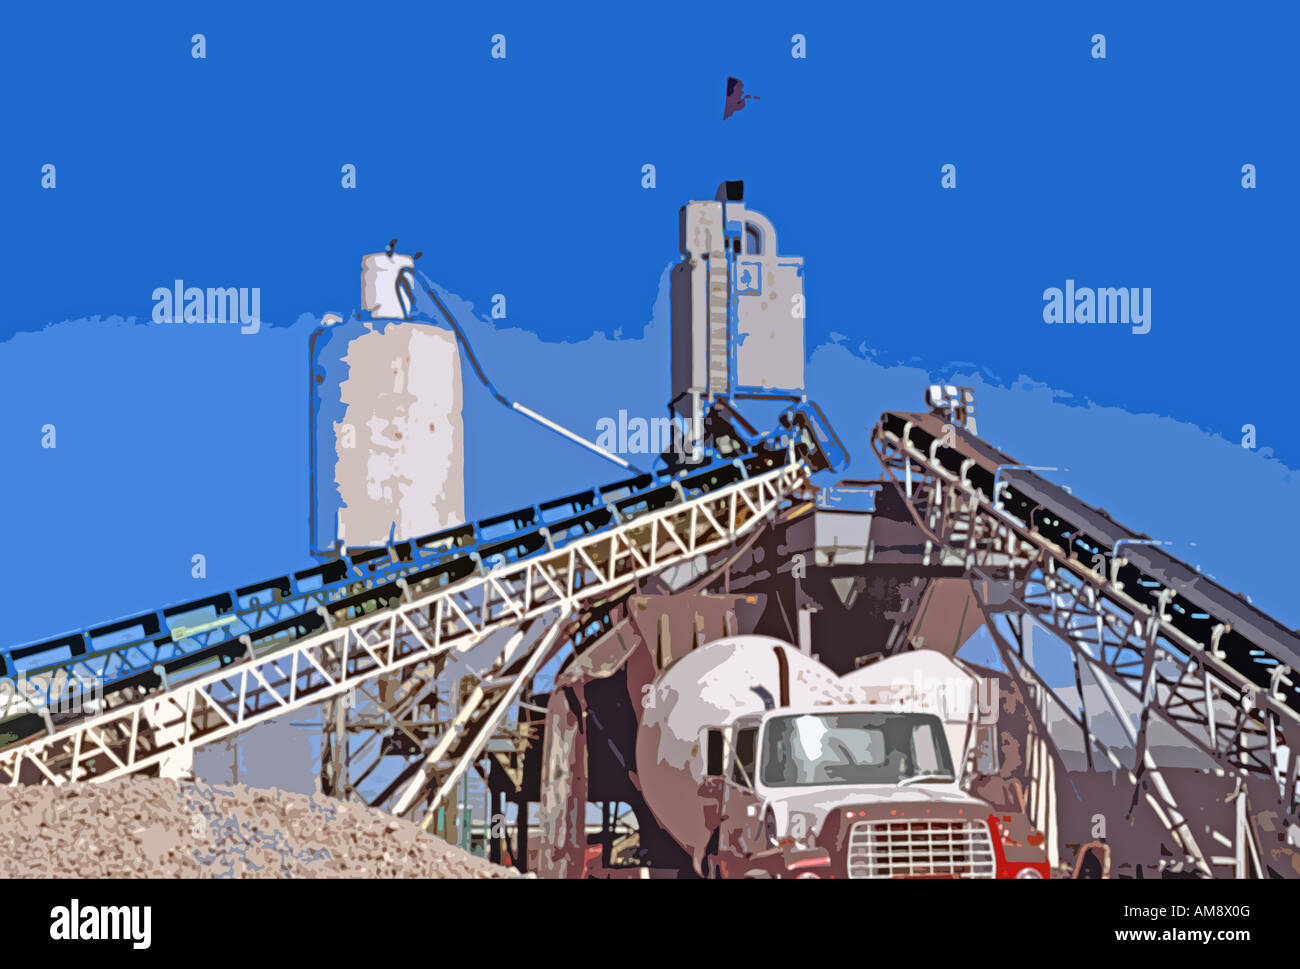 Clinker Cement Plants In Usa : A cement manufacturing plant in salt lake city utah usa